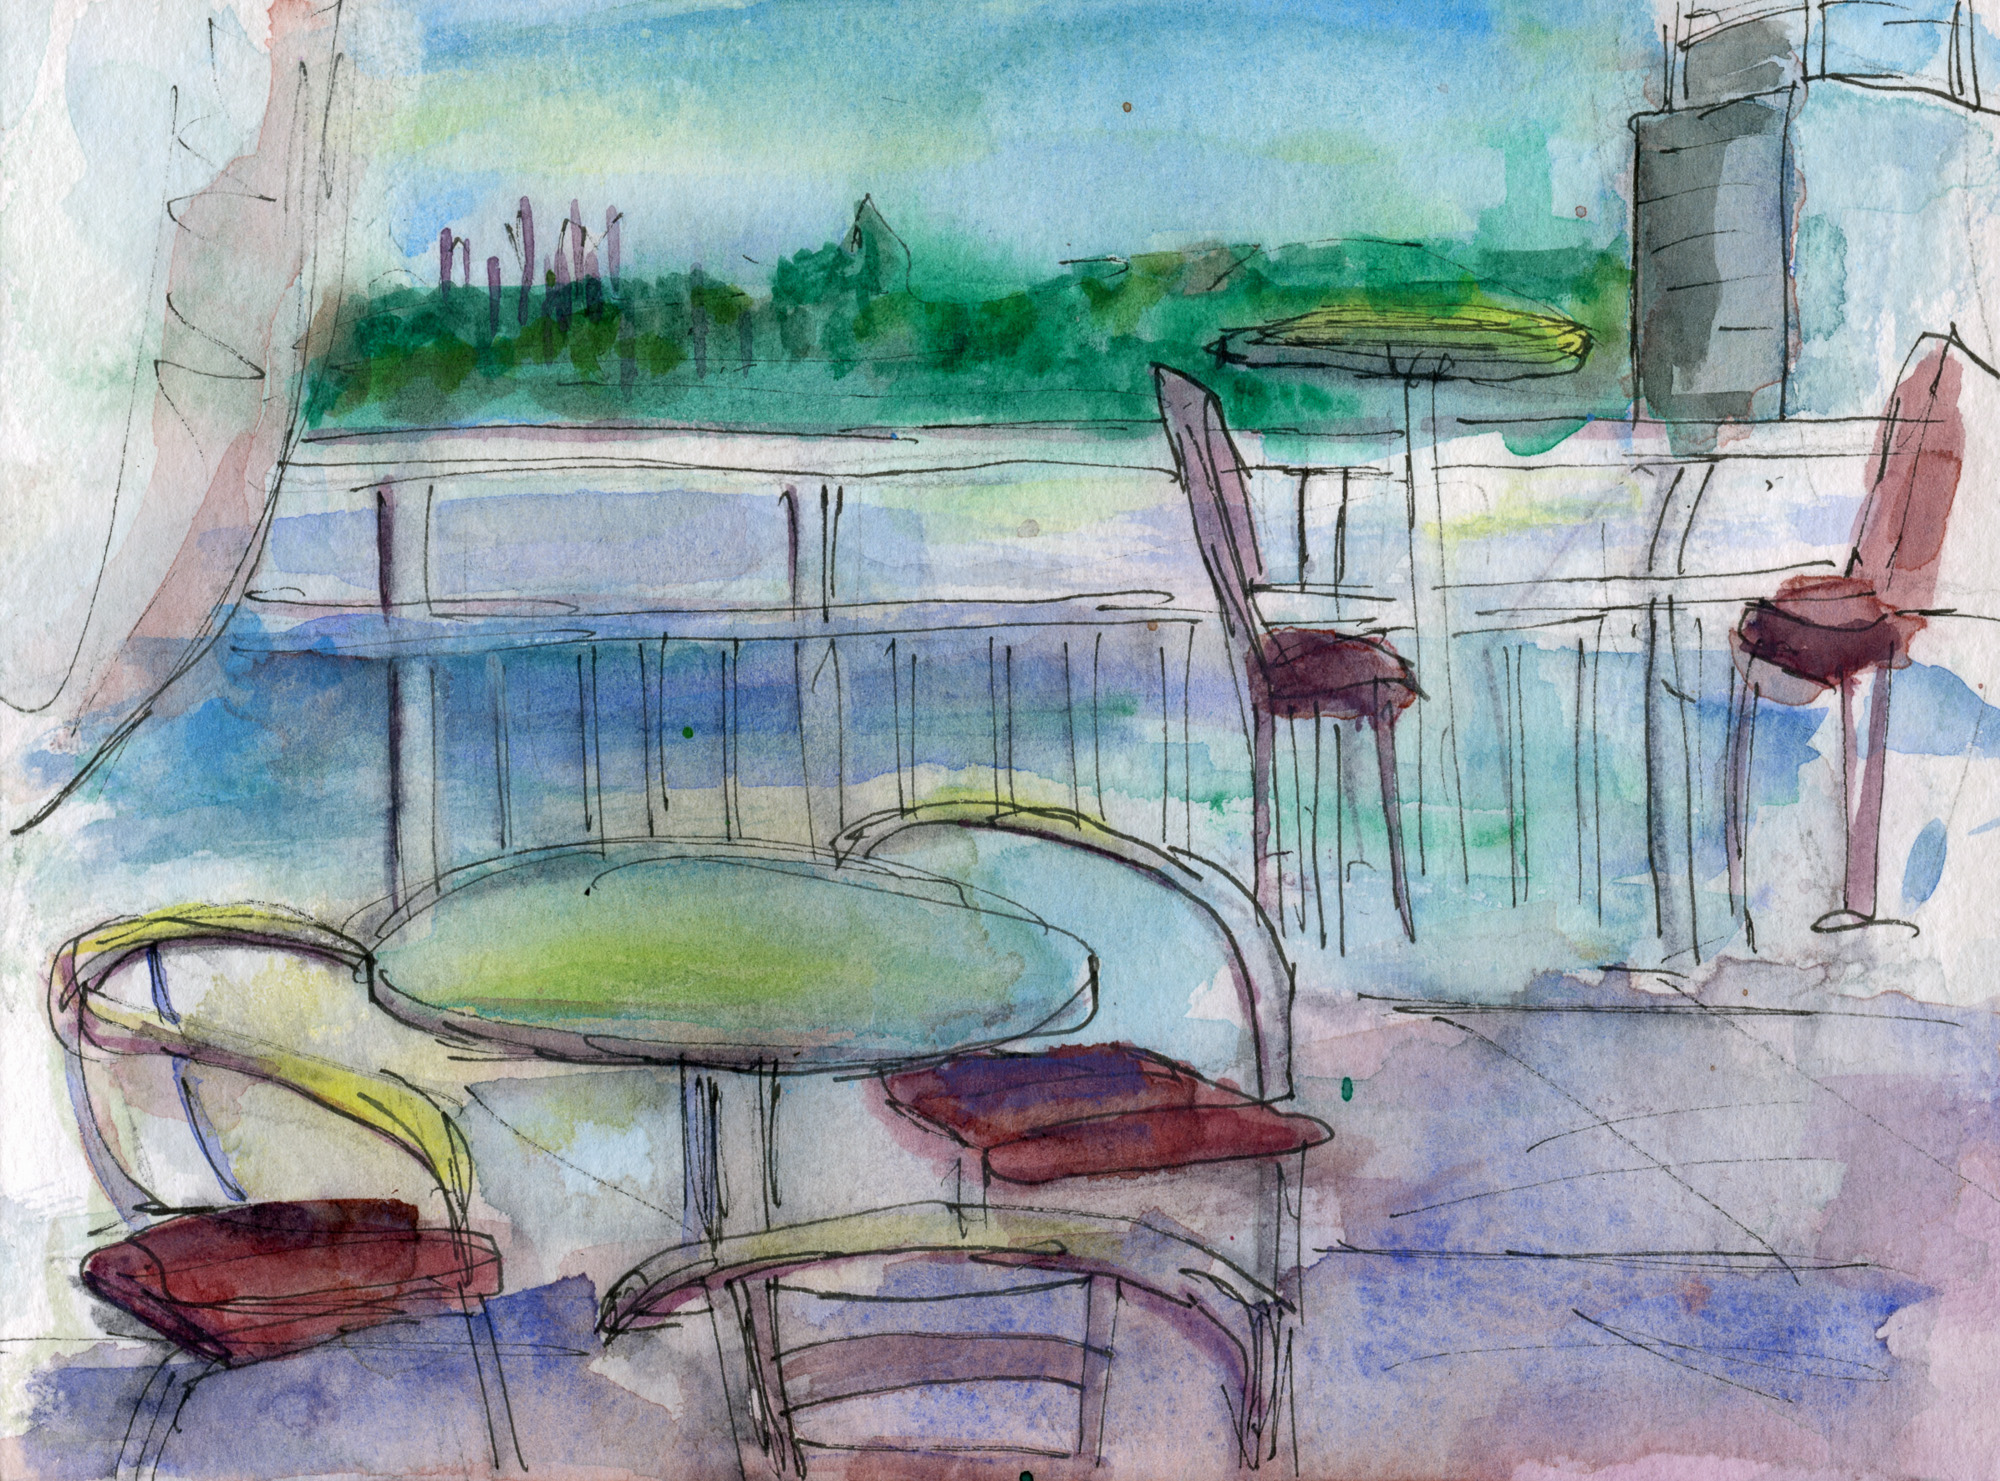 As Evening Settles In (Inspired by the view of the Harbourfront from the pool deck at the Radisson Hotel)